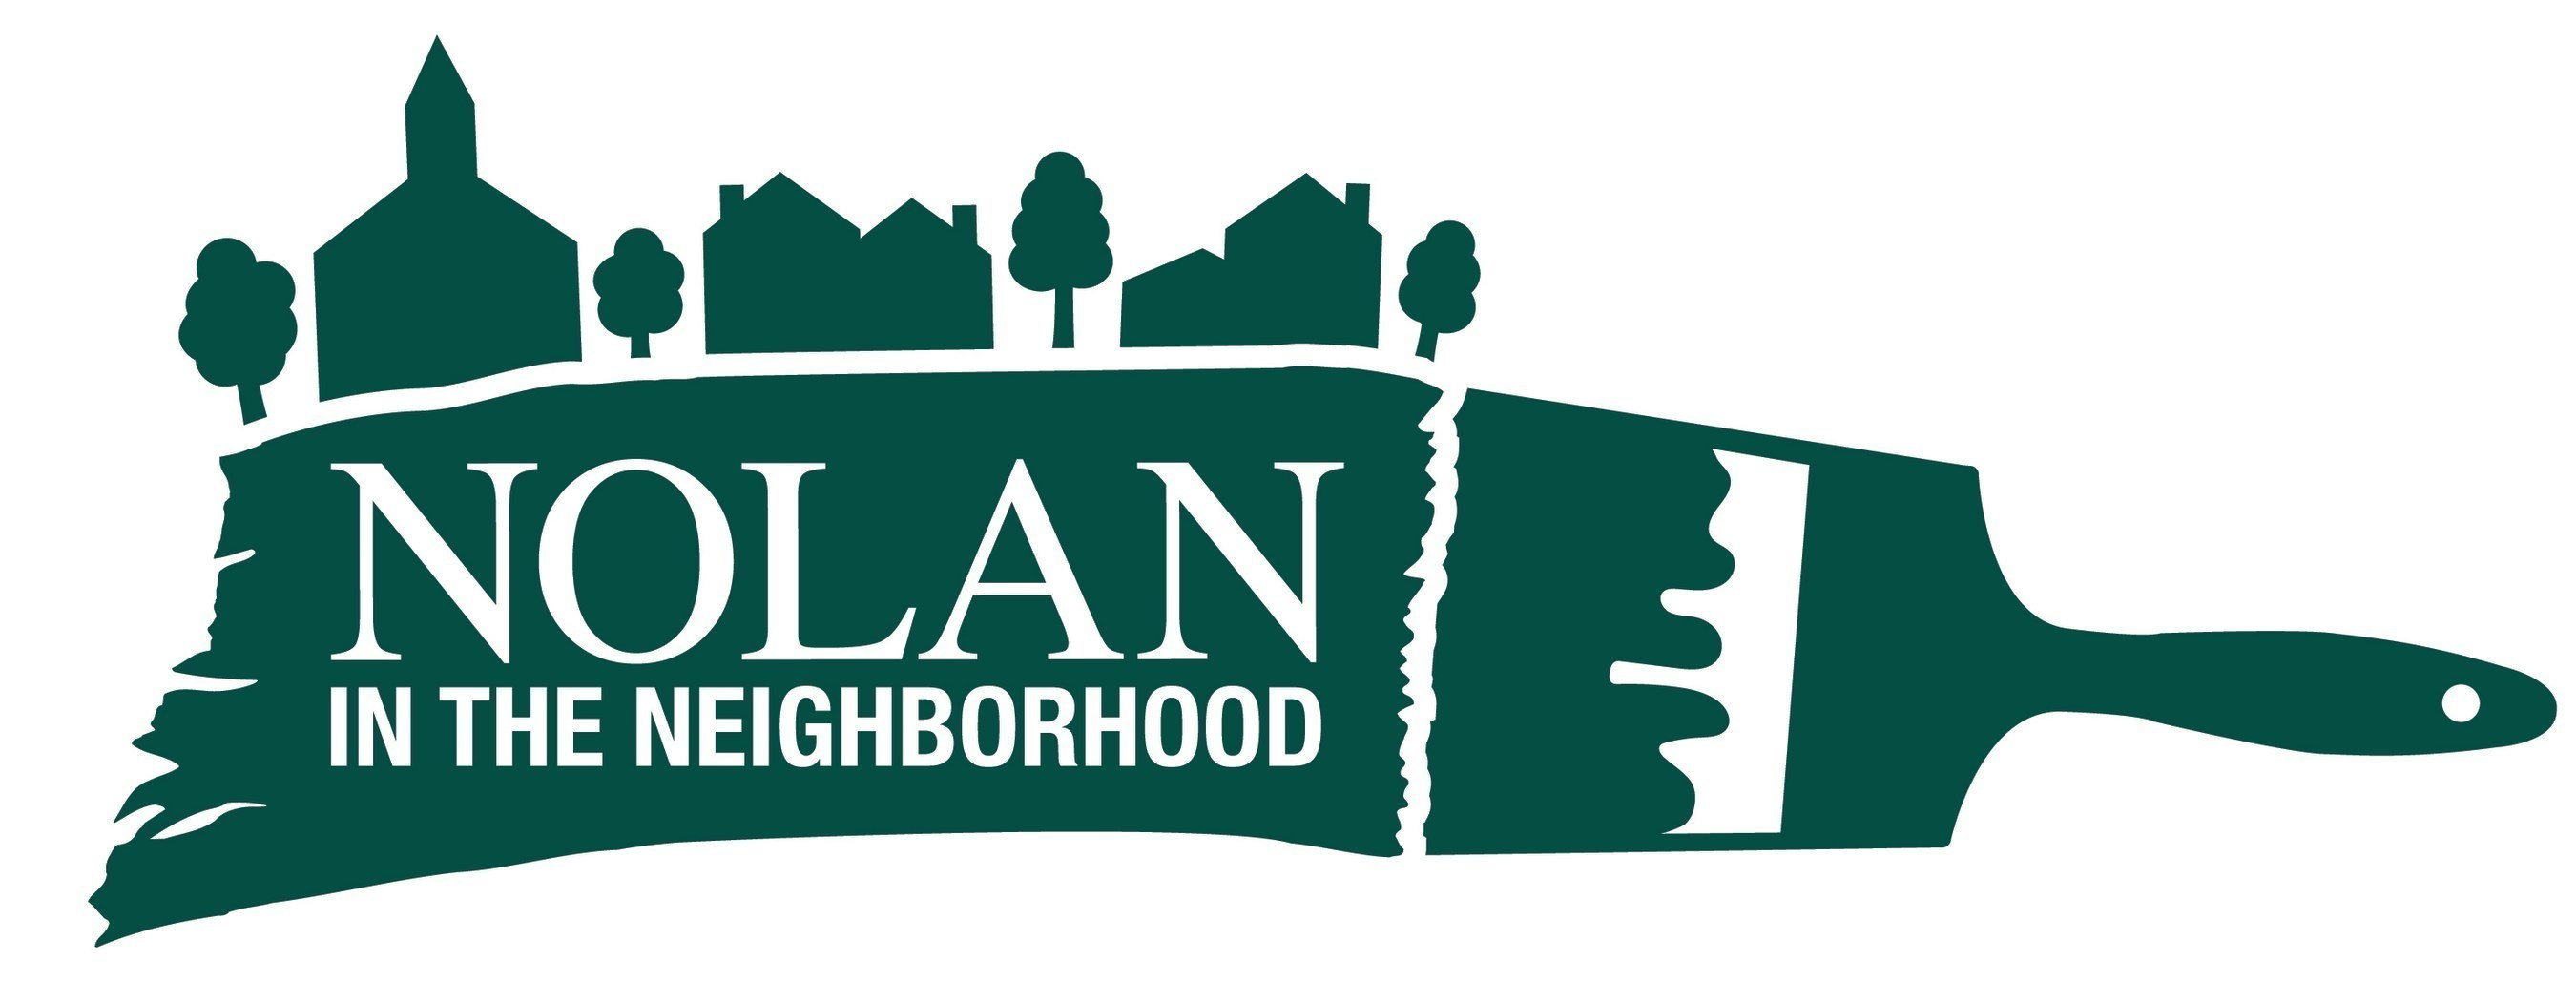 Nolan in the Neighborhood is a new community initiative by Nolan Painting to support local organizations and events throughout Southeastern Pennsylvania.